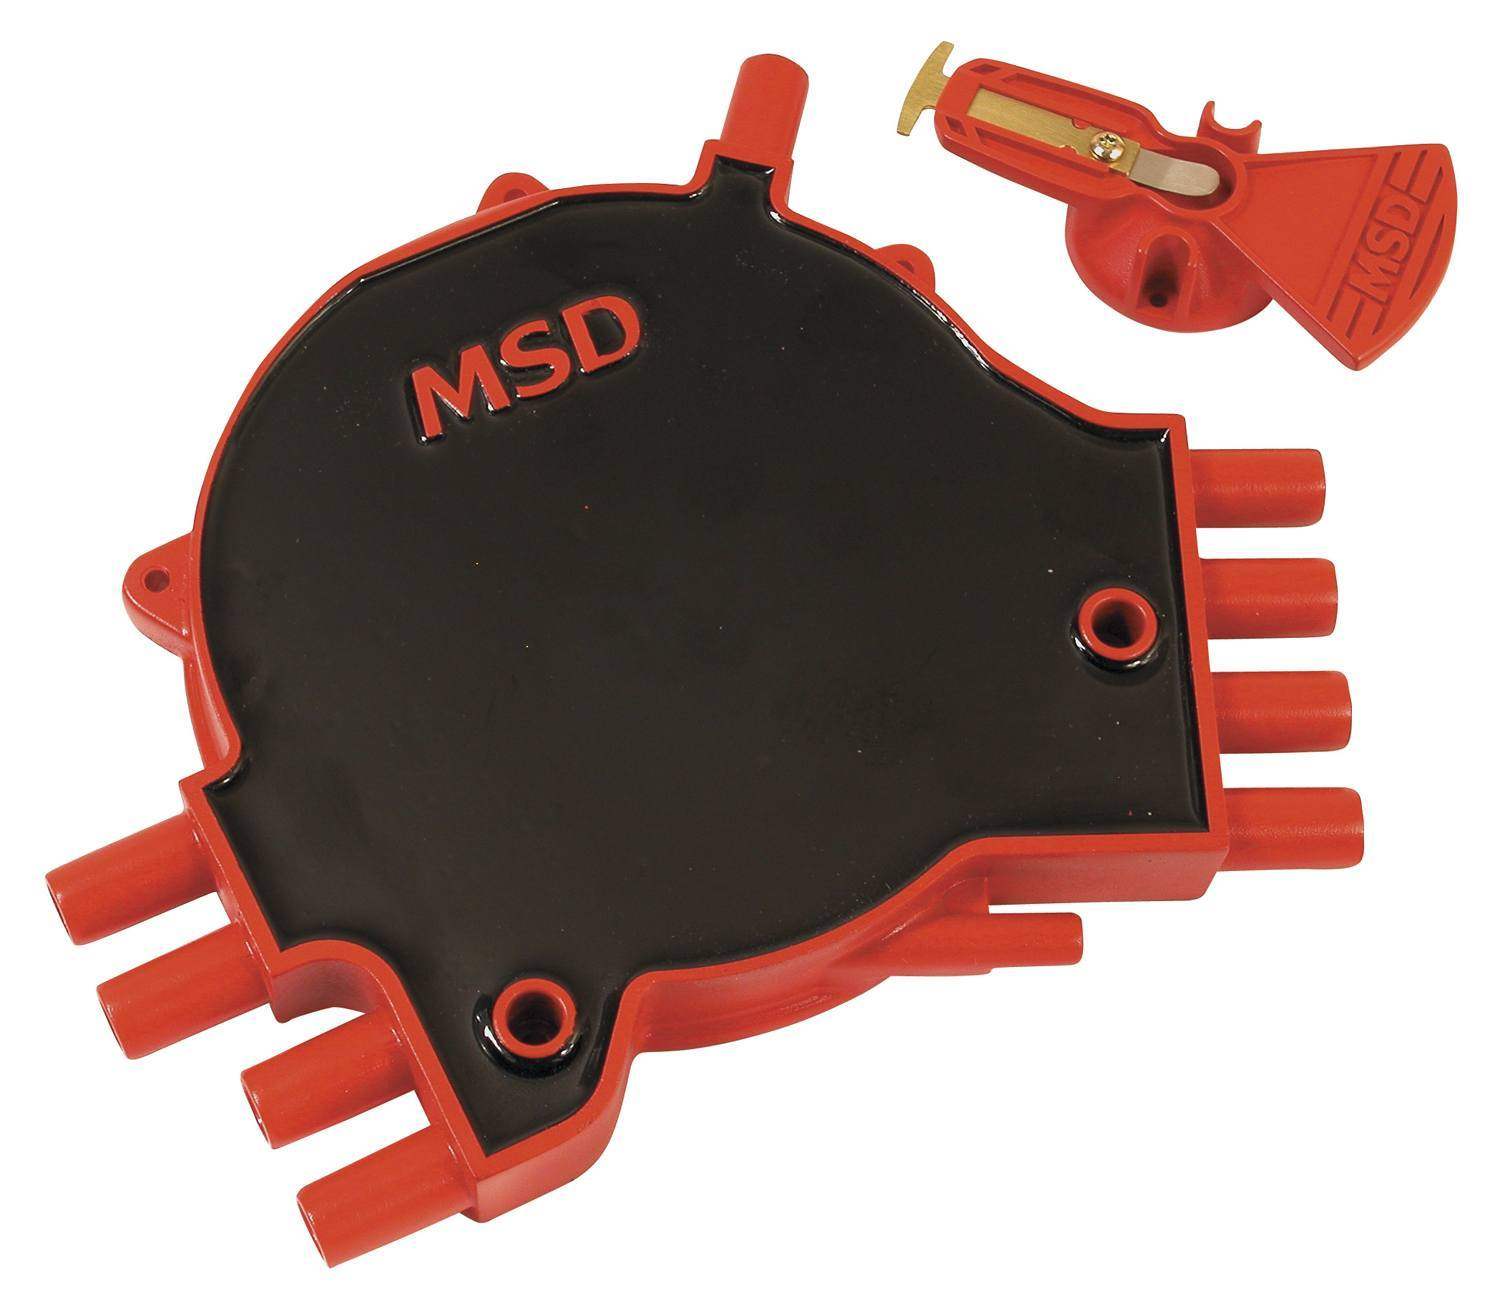 MSD Ignition 84811 Cap and Rotor Kit, Socket Style, Brass Terminals, Screw Down, Black / Red, Vented, GM LT-Series 1995-97, Kit